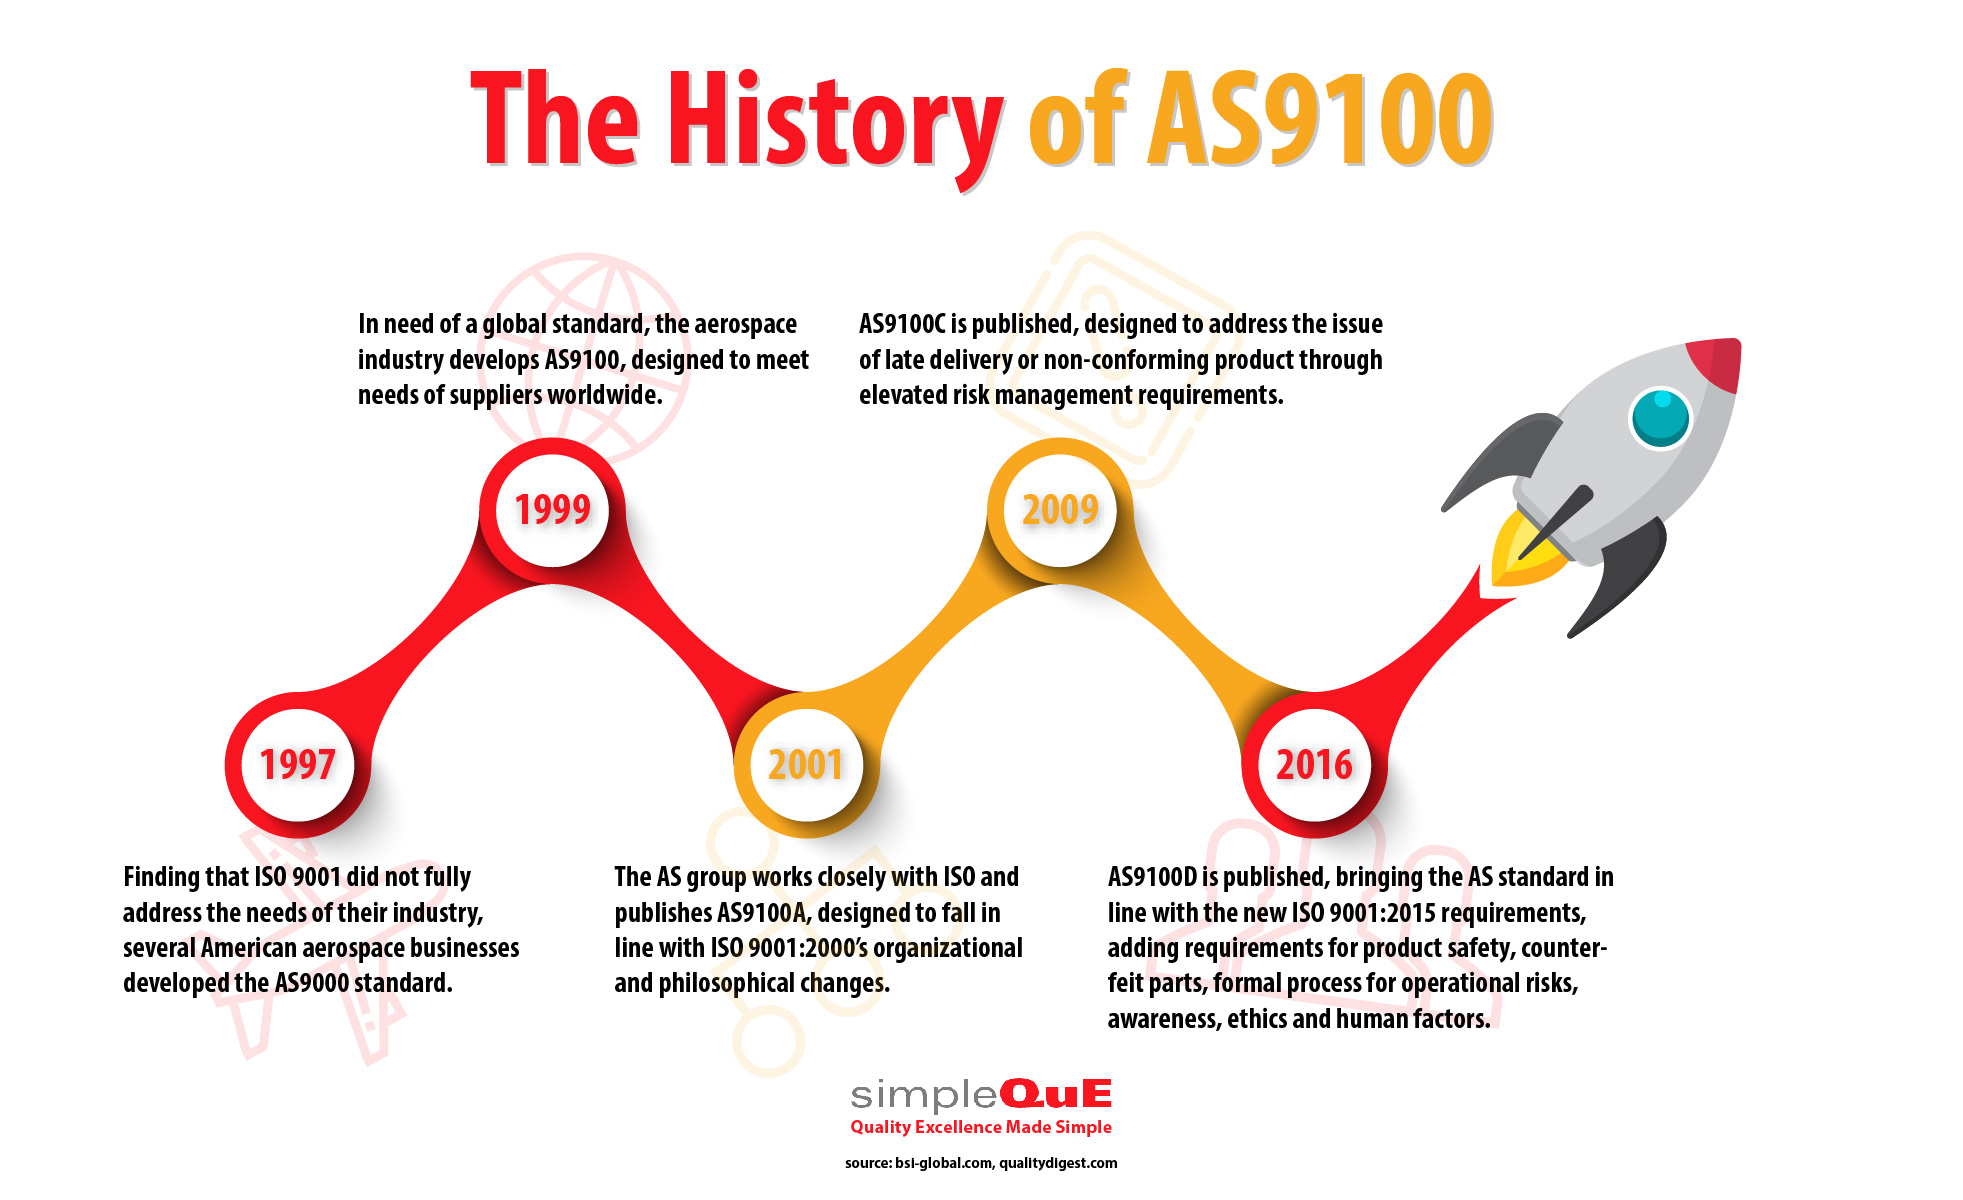 The History of AS9100